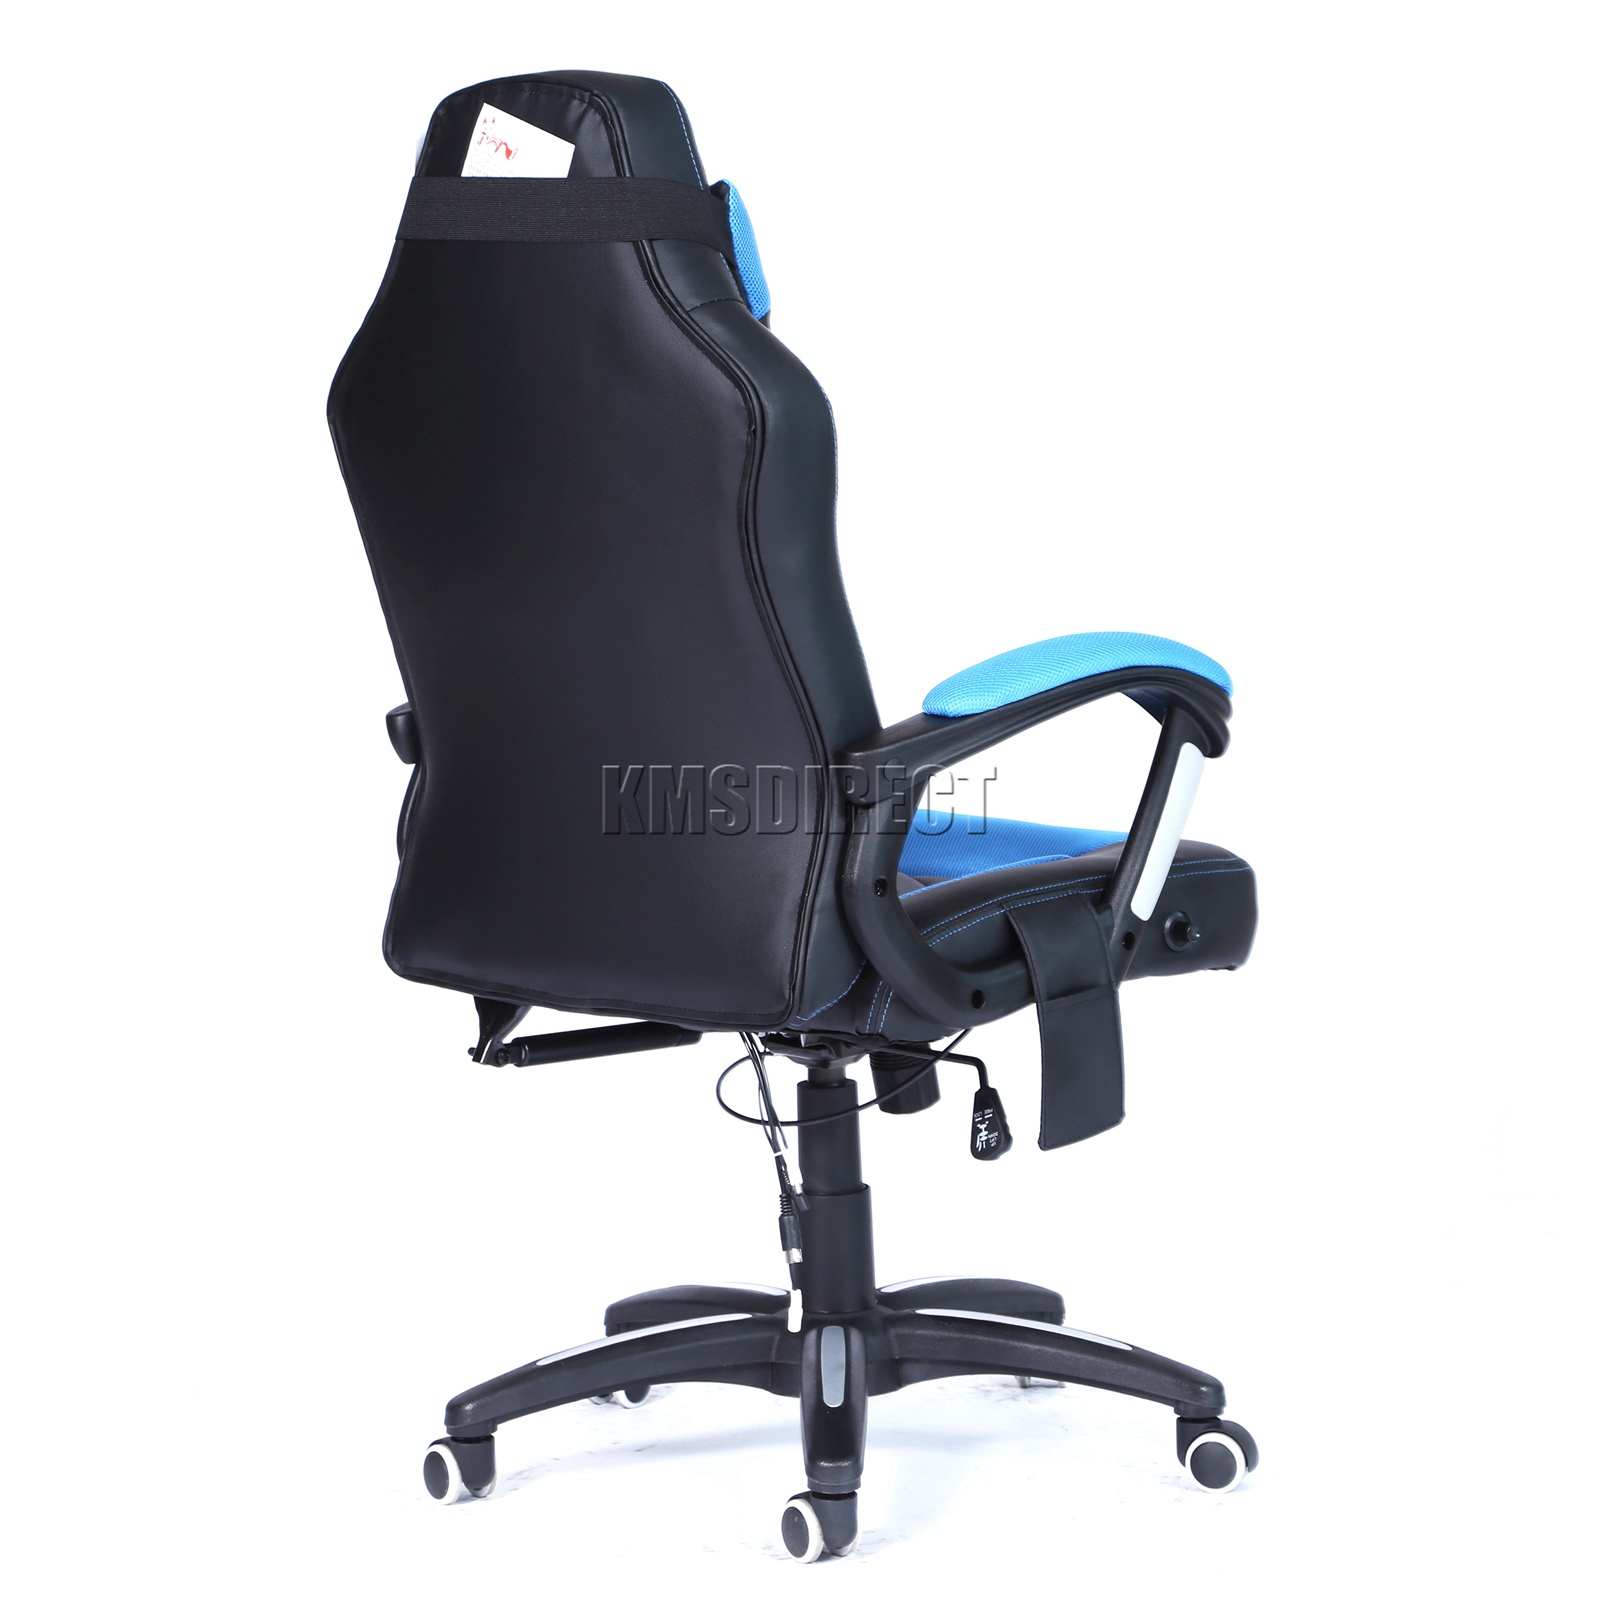 WestWood-Heated-Massage-Office-Chair-Gaming-amp-Computer-Recliner-Swivel-MC09 thumbnail 17